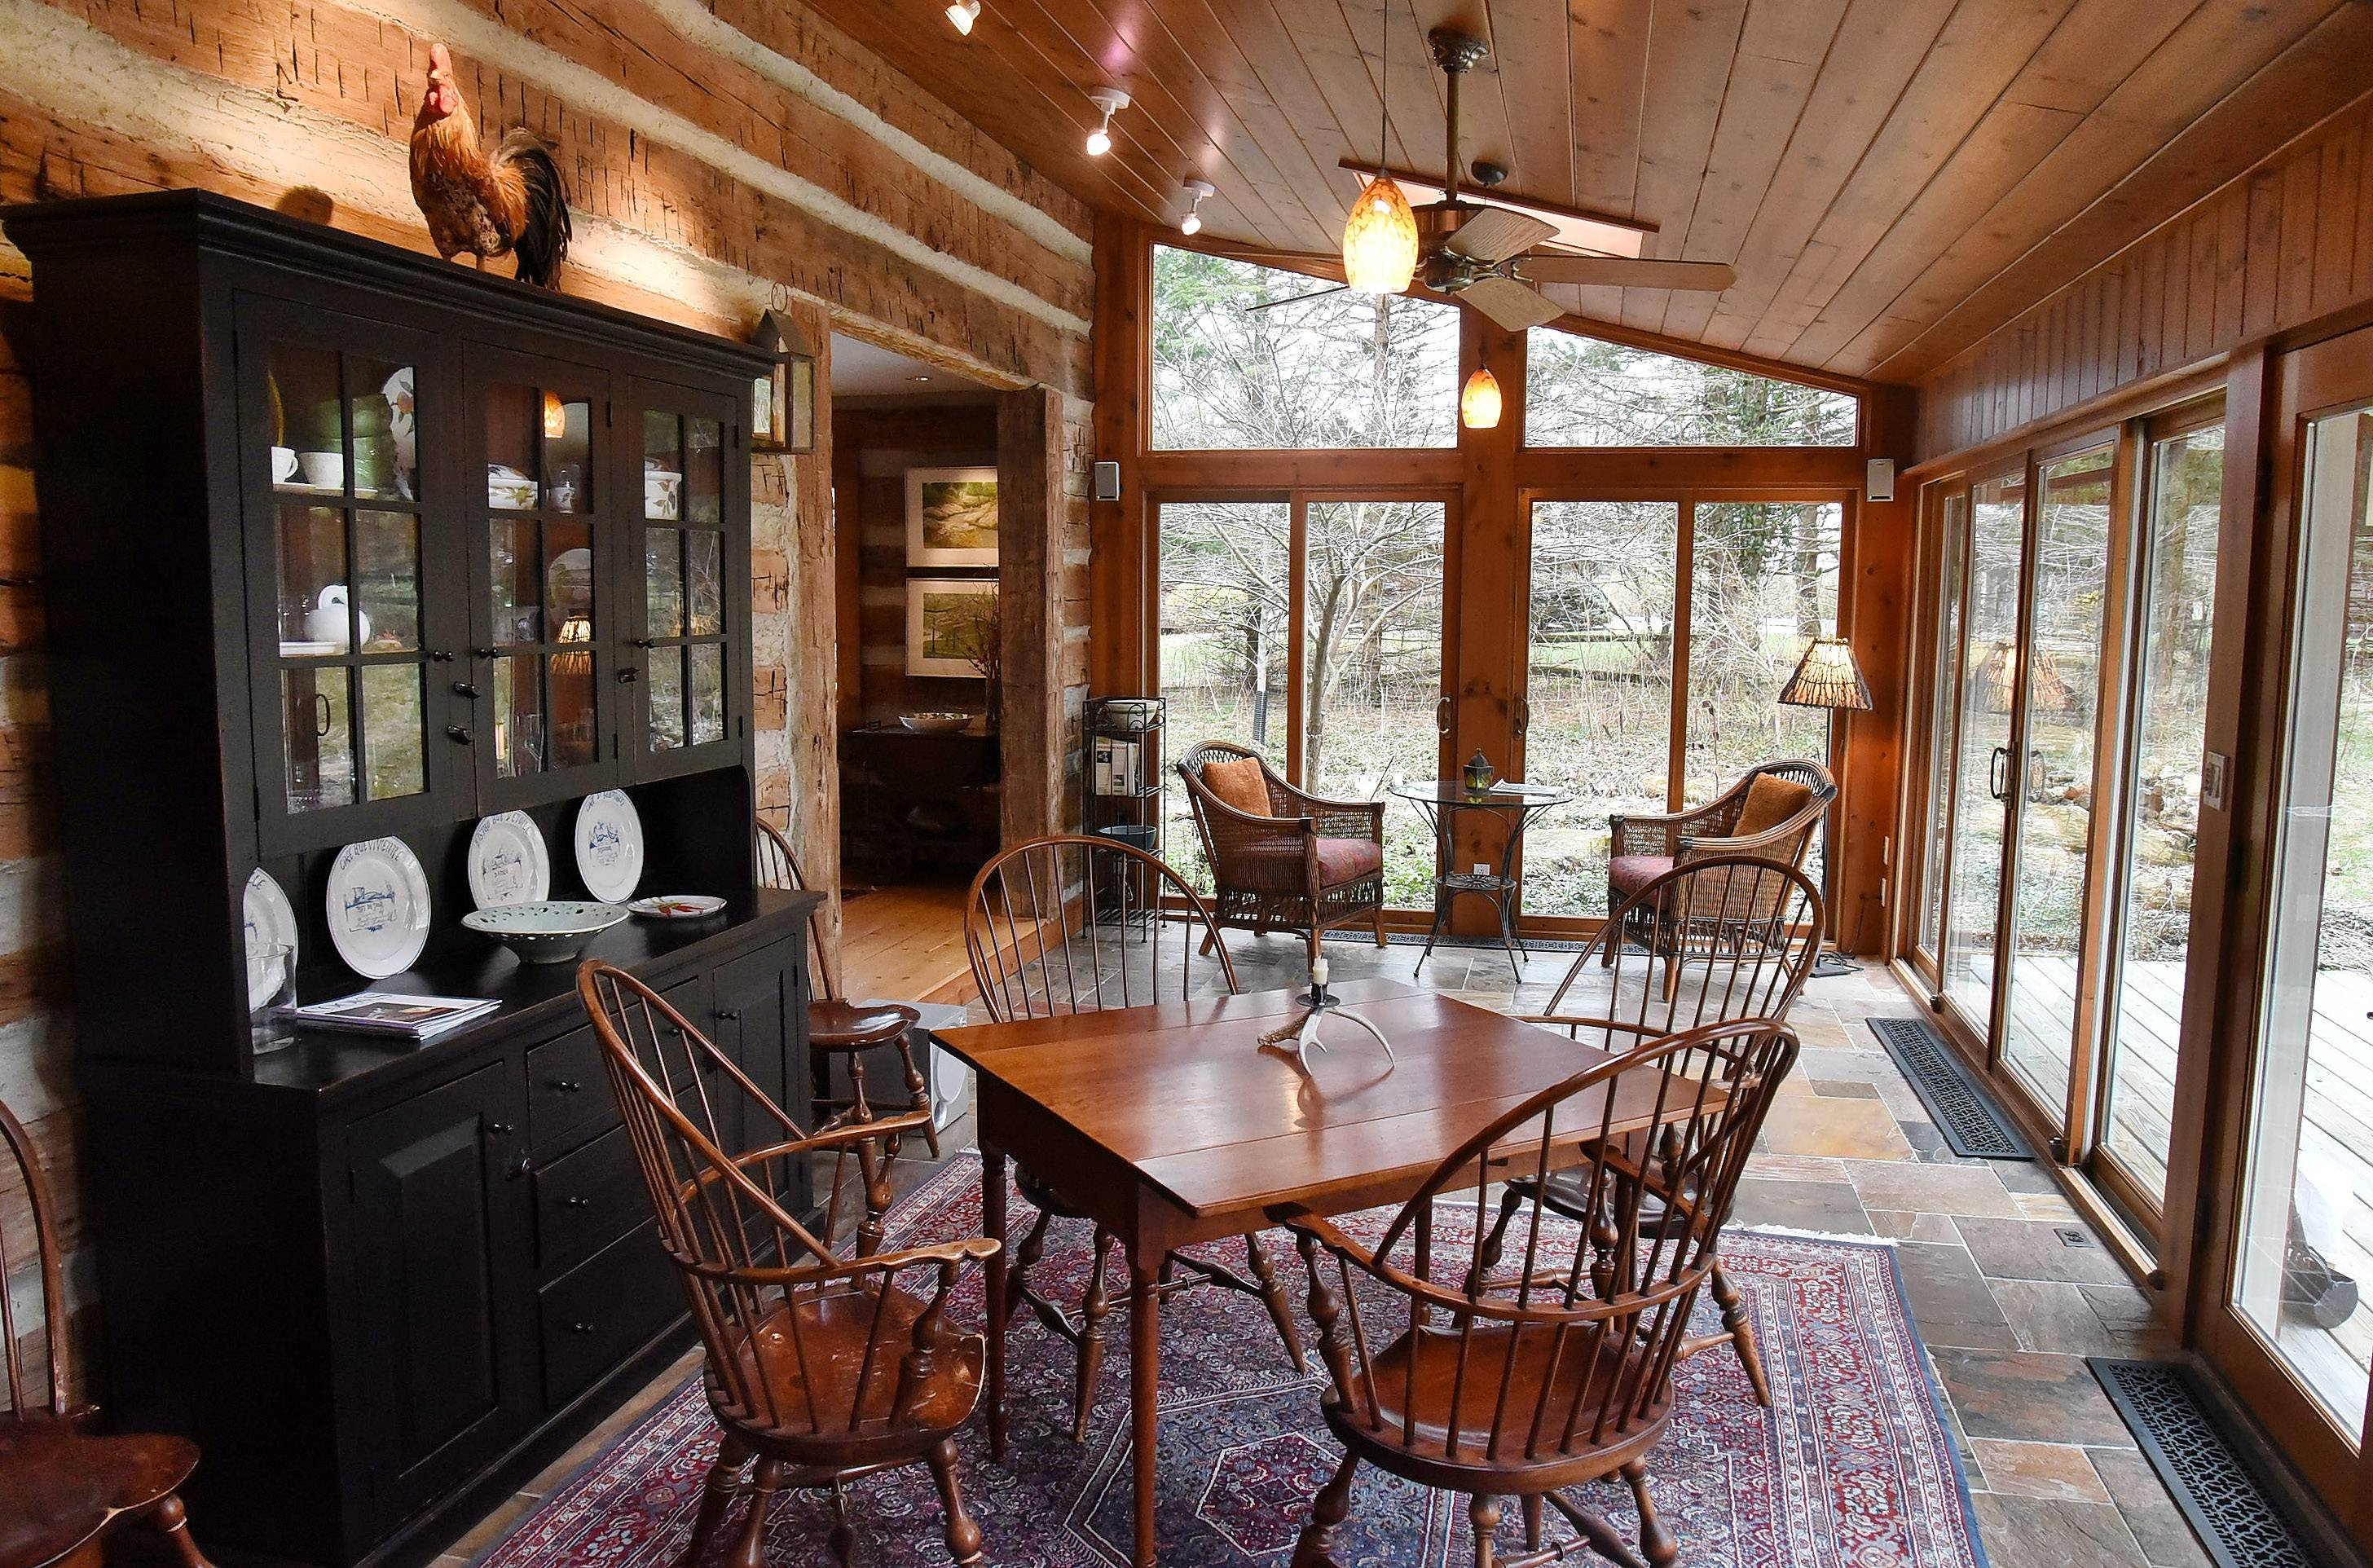 Sunroom of Kevin and Laurie Sherman's log cabin in Barrington Hills.